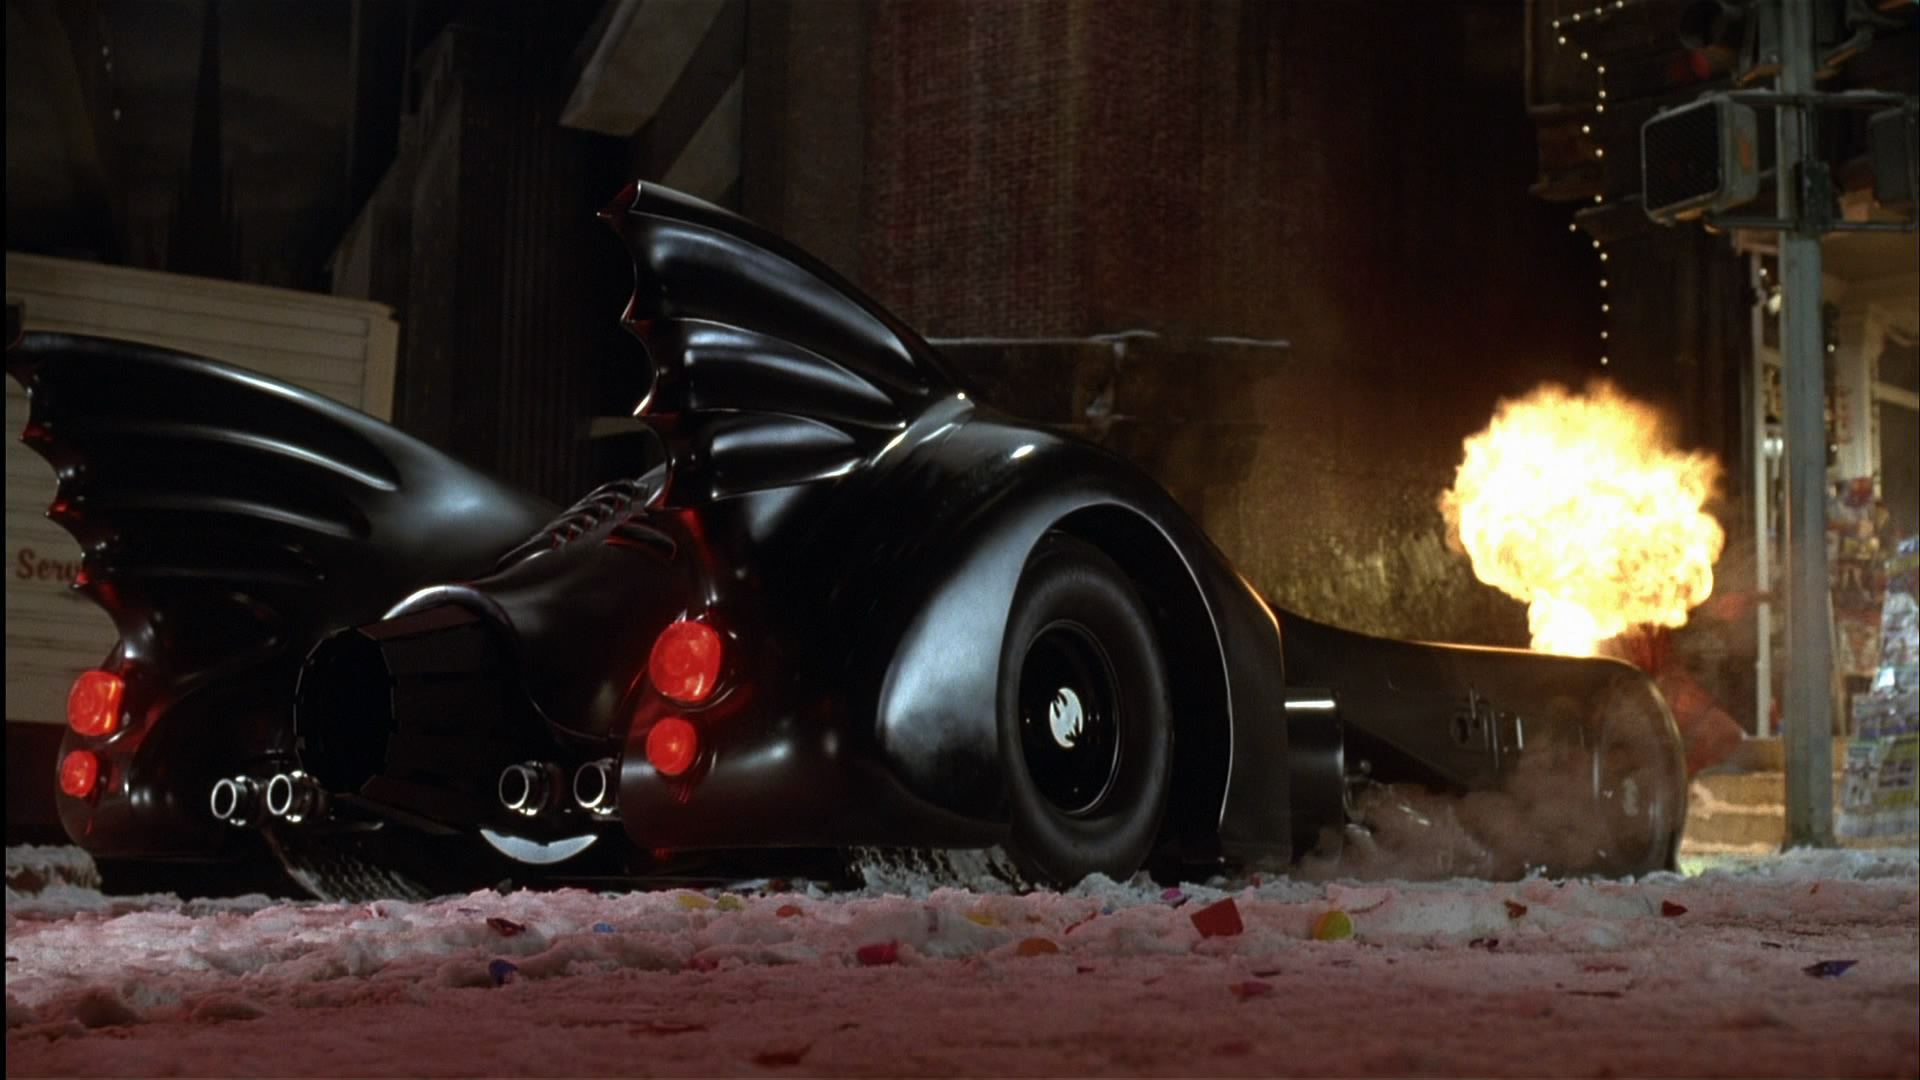 batman online gallery batmobile vs fire breather from 25th Anniversary Frame 25th Anniversary Graphics